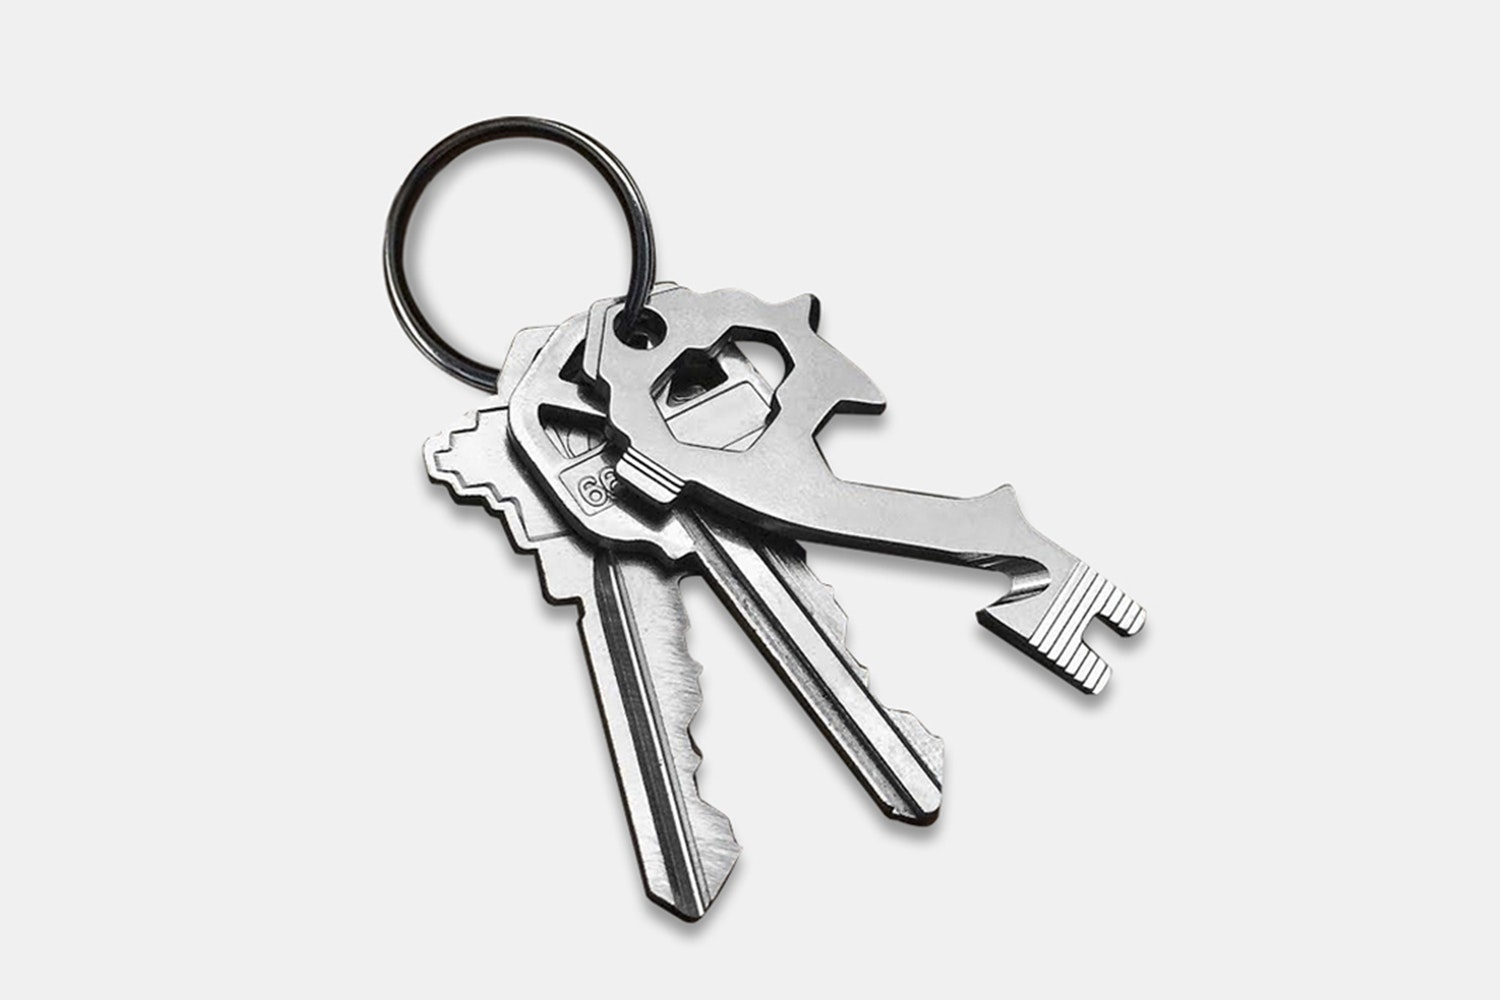 MSTRMND Collective MSTR KEY 20-in-1 Keychain Tool